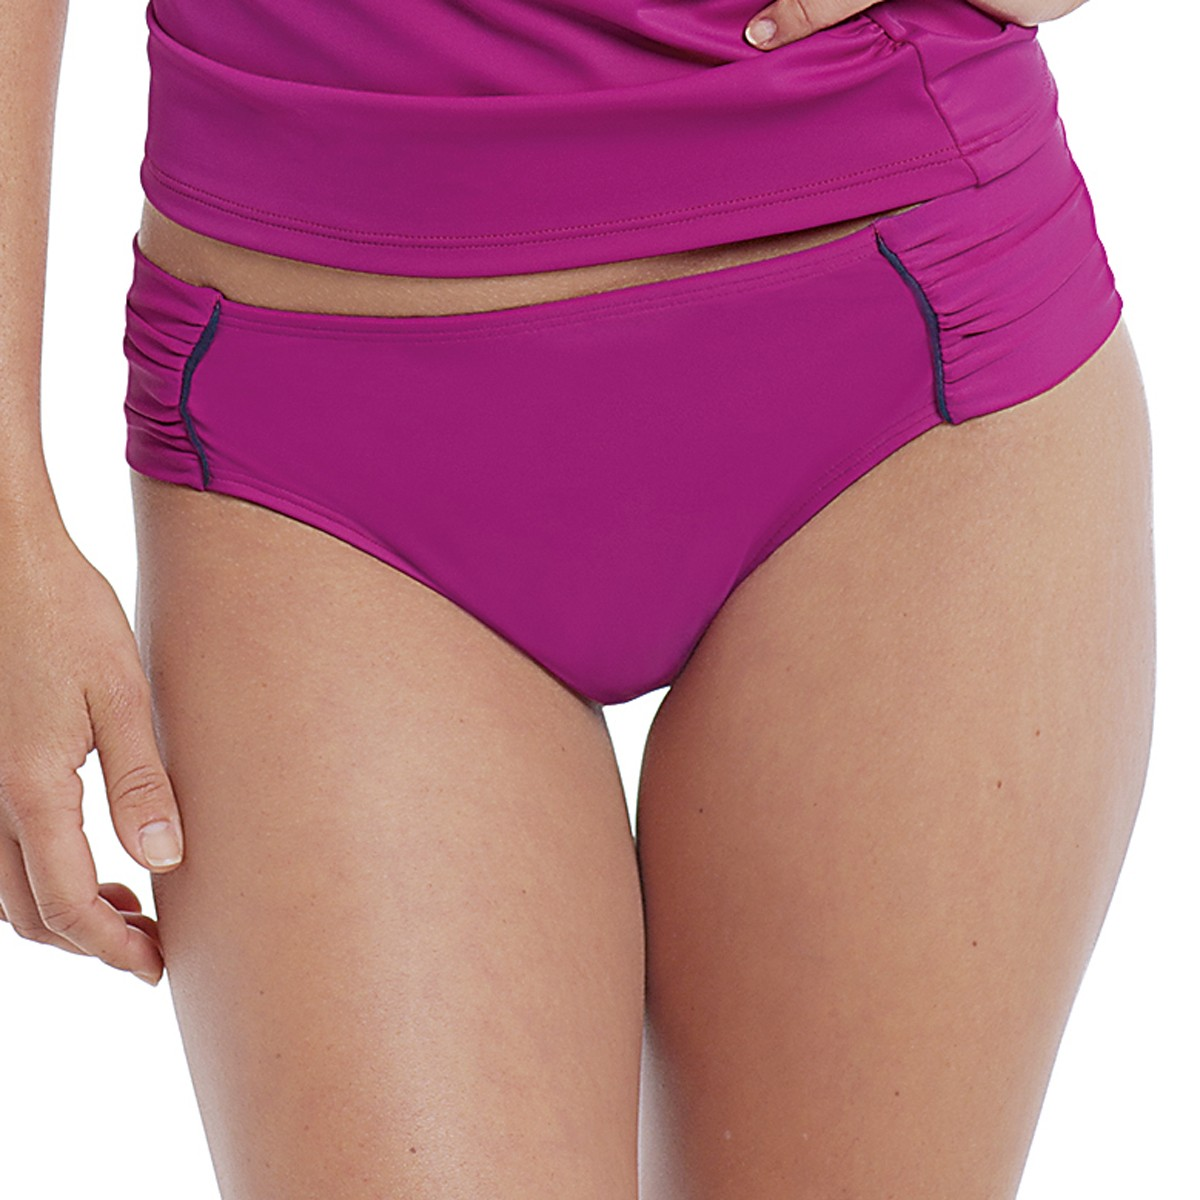 Panache Veronica Gathered Bikini Brief - Magenta